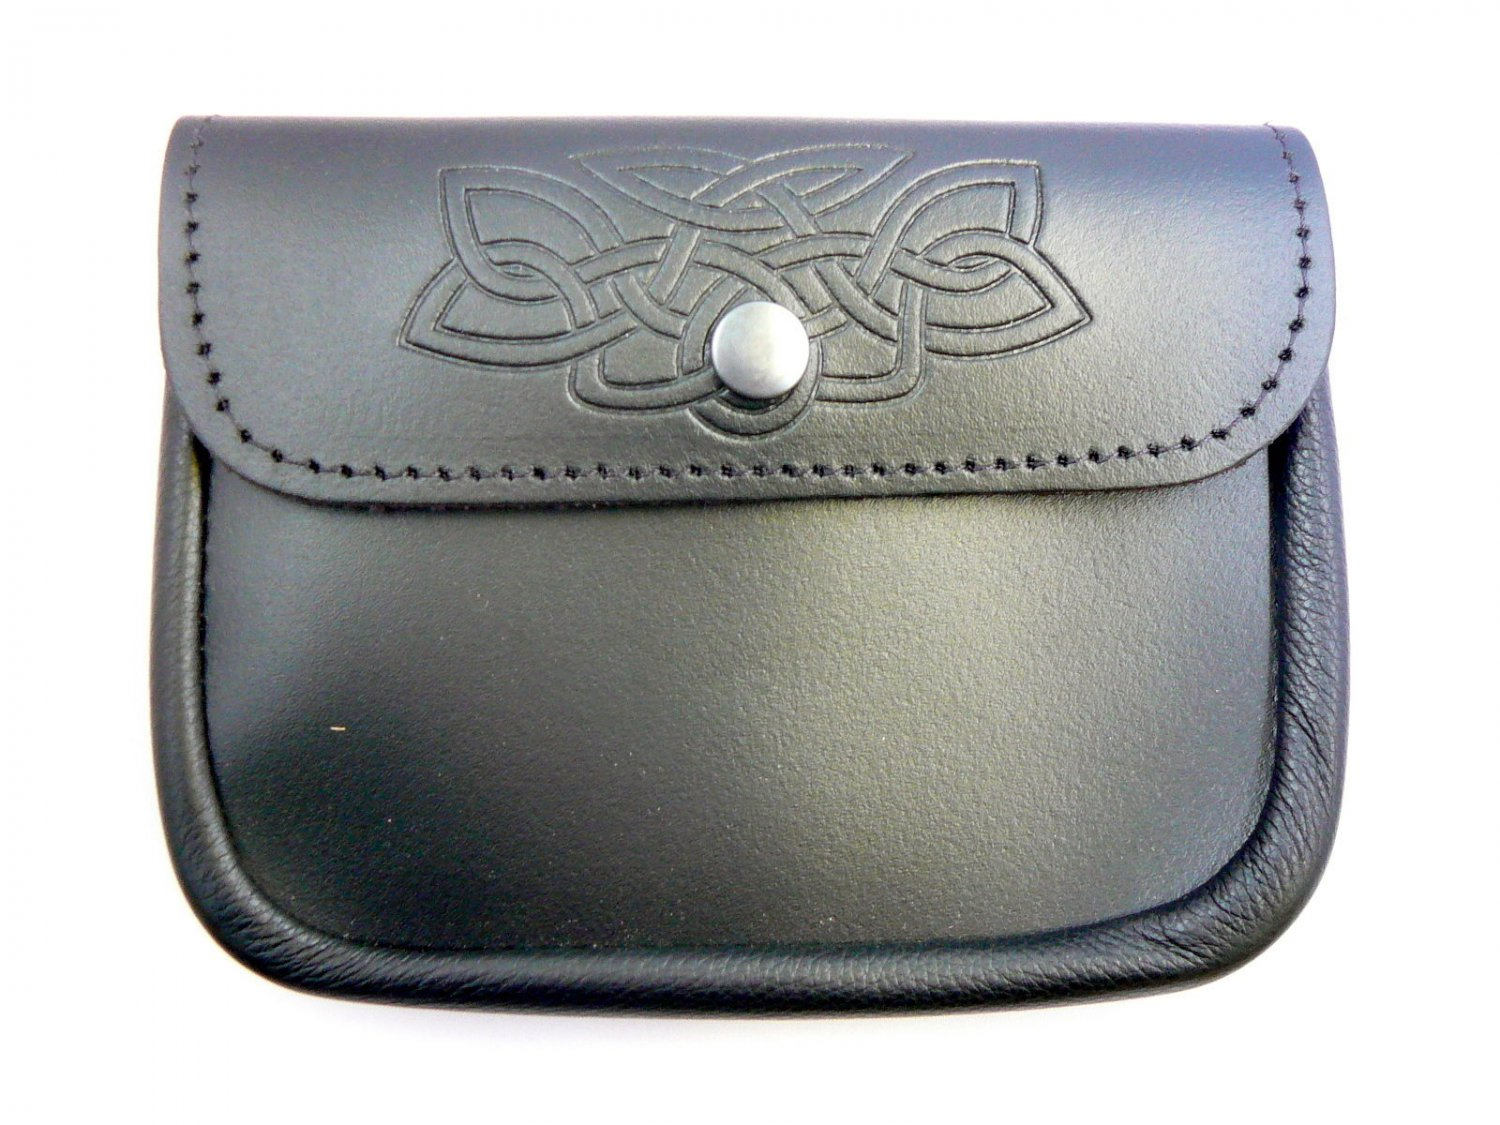 BAGPIPER'S Embossed LEATHER Black POUCH